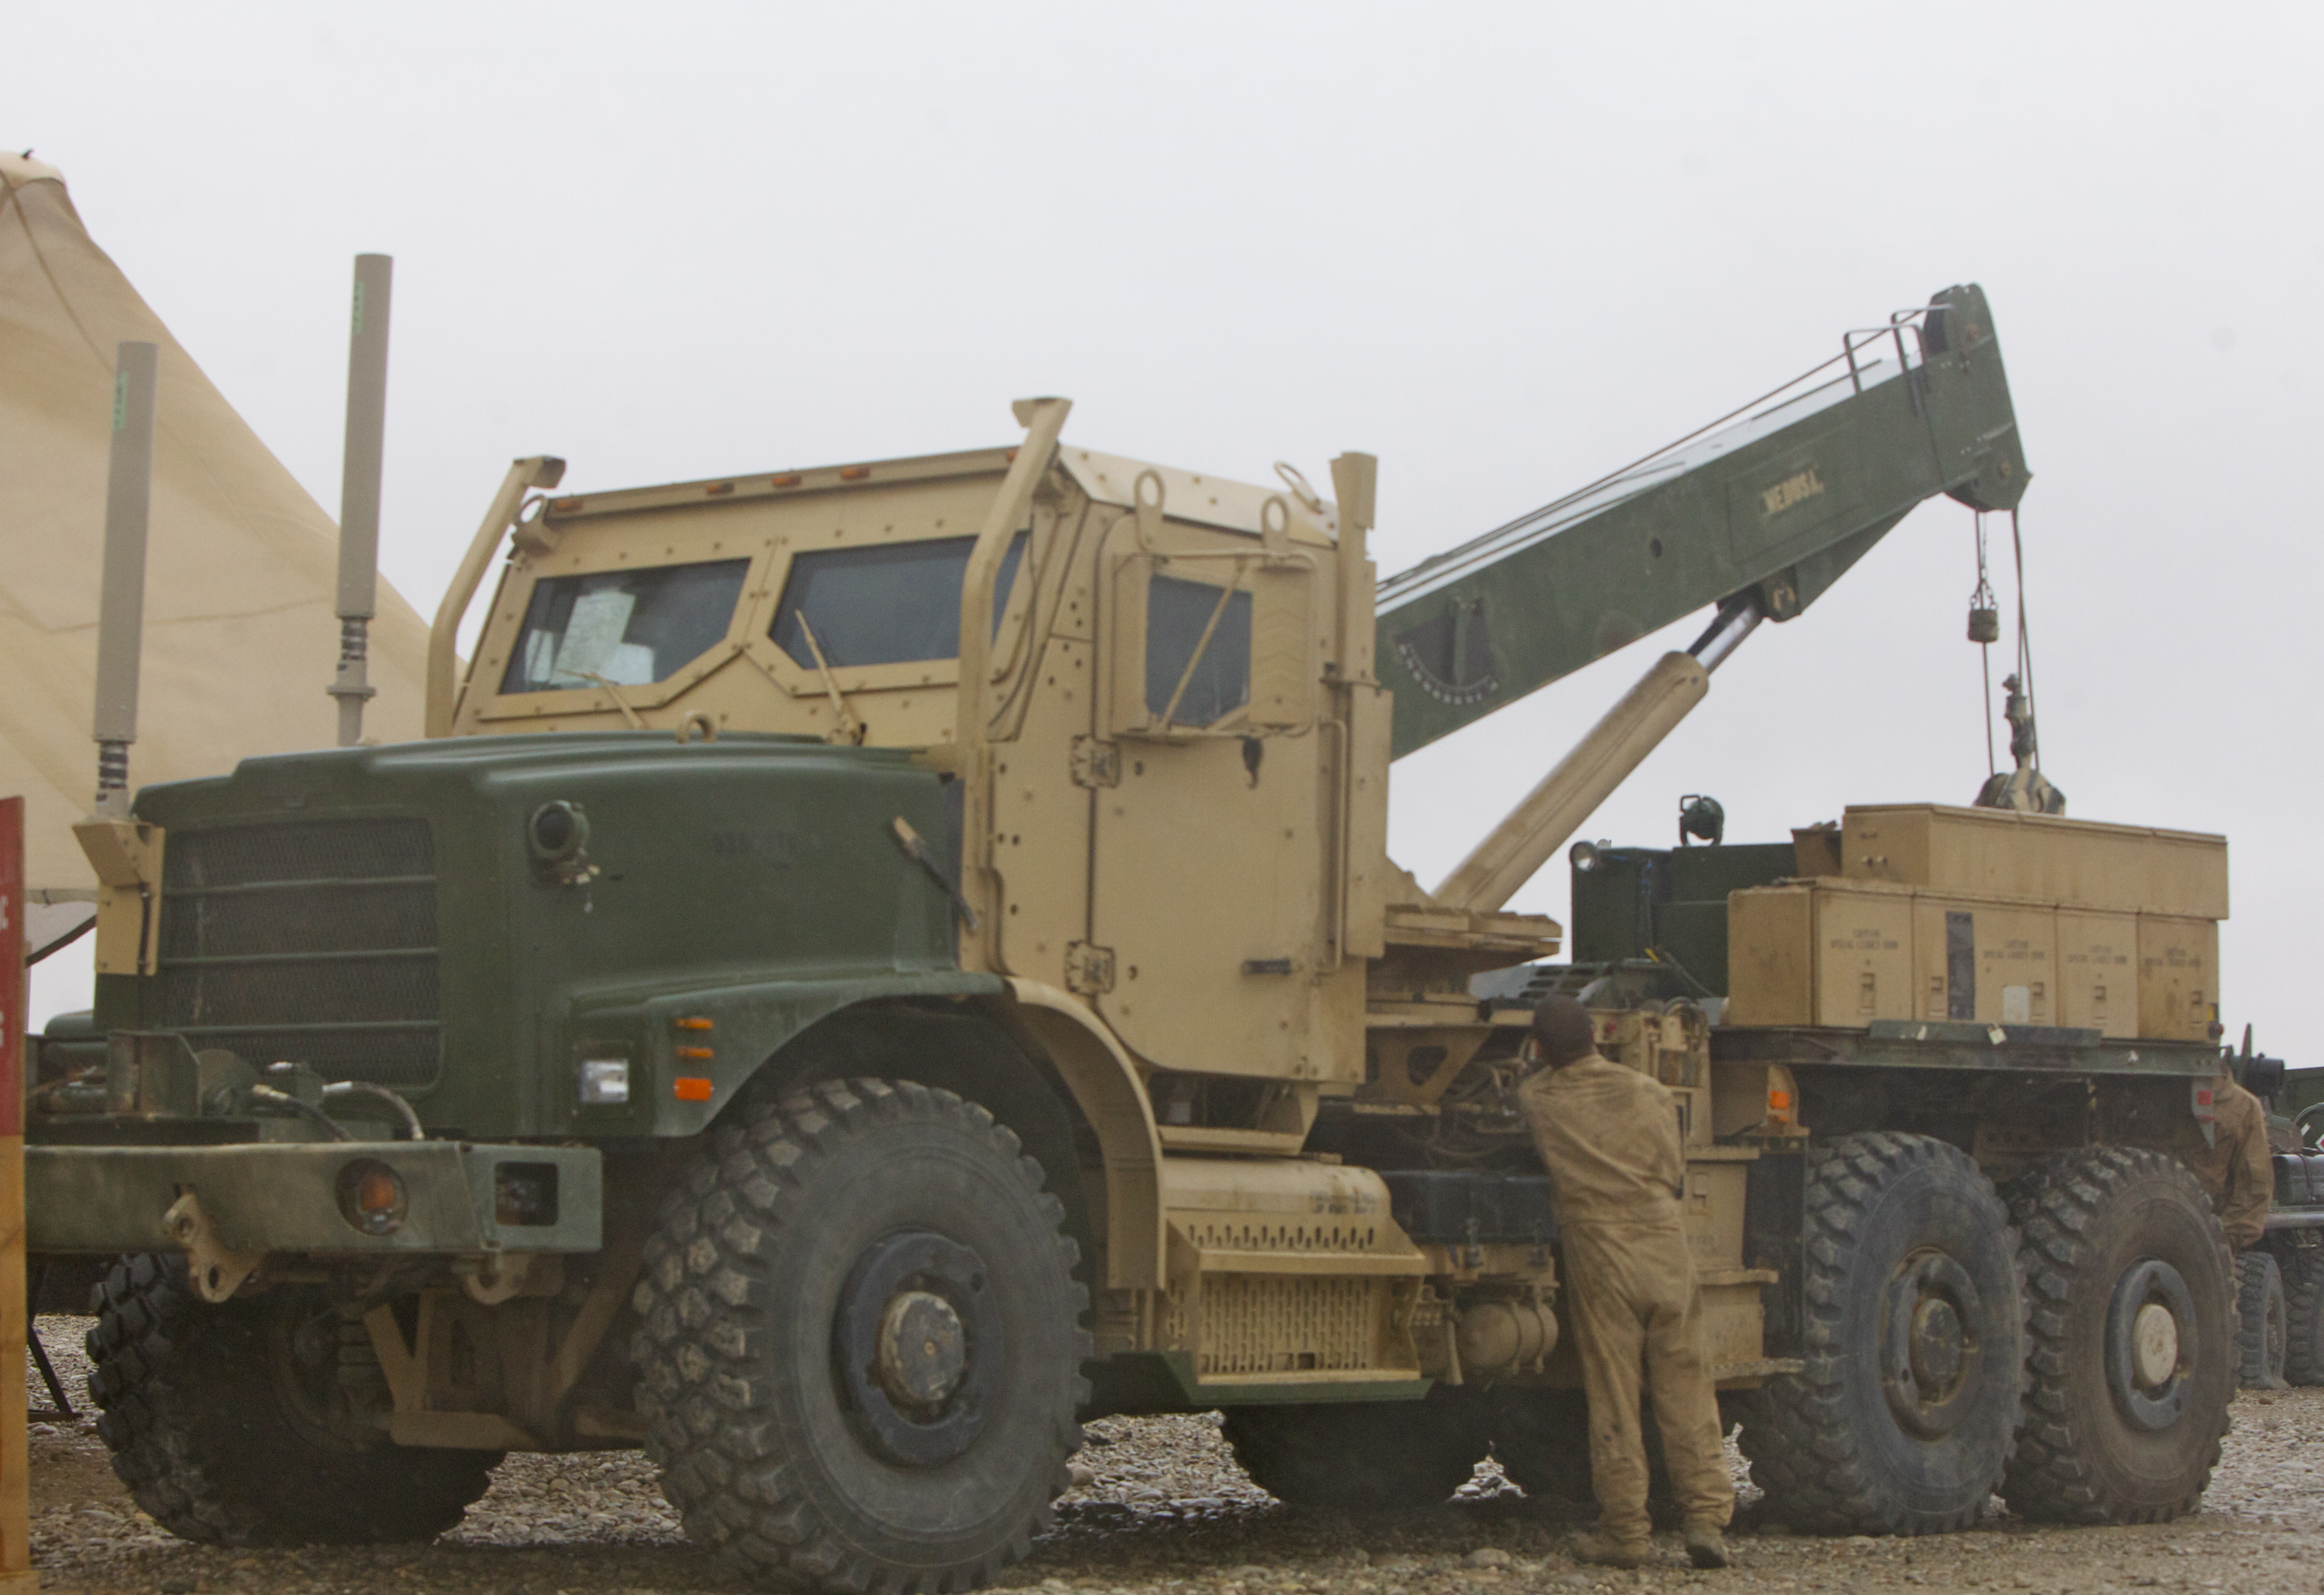 Medium Tactical Vehicle Replacement Wikipedia Rule Winch Wiring Diagrams Designation For The Wrecker Mtvr Variant Is Mk36 This Example Fitted With An Armored Cab